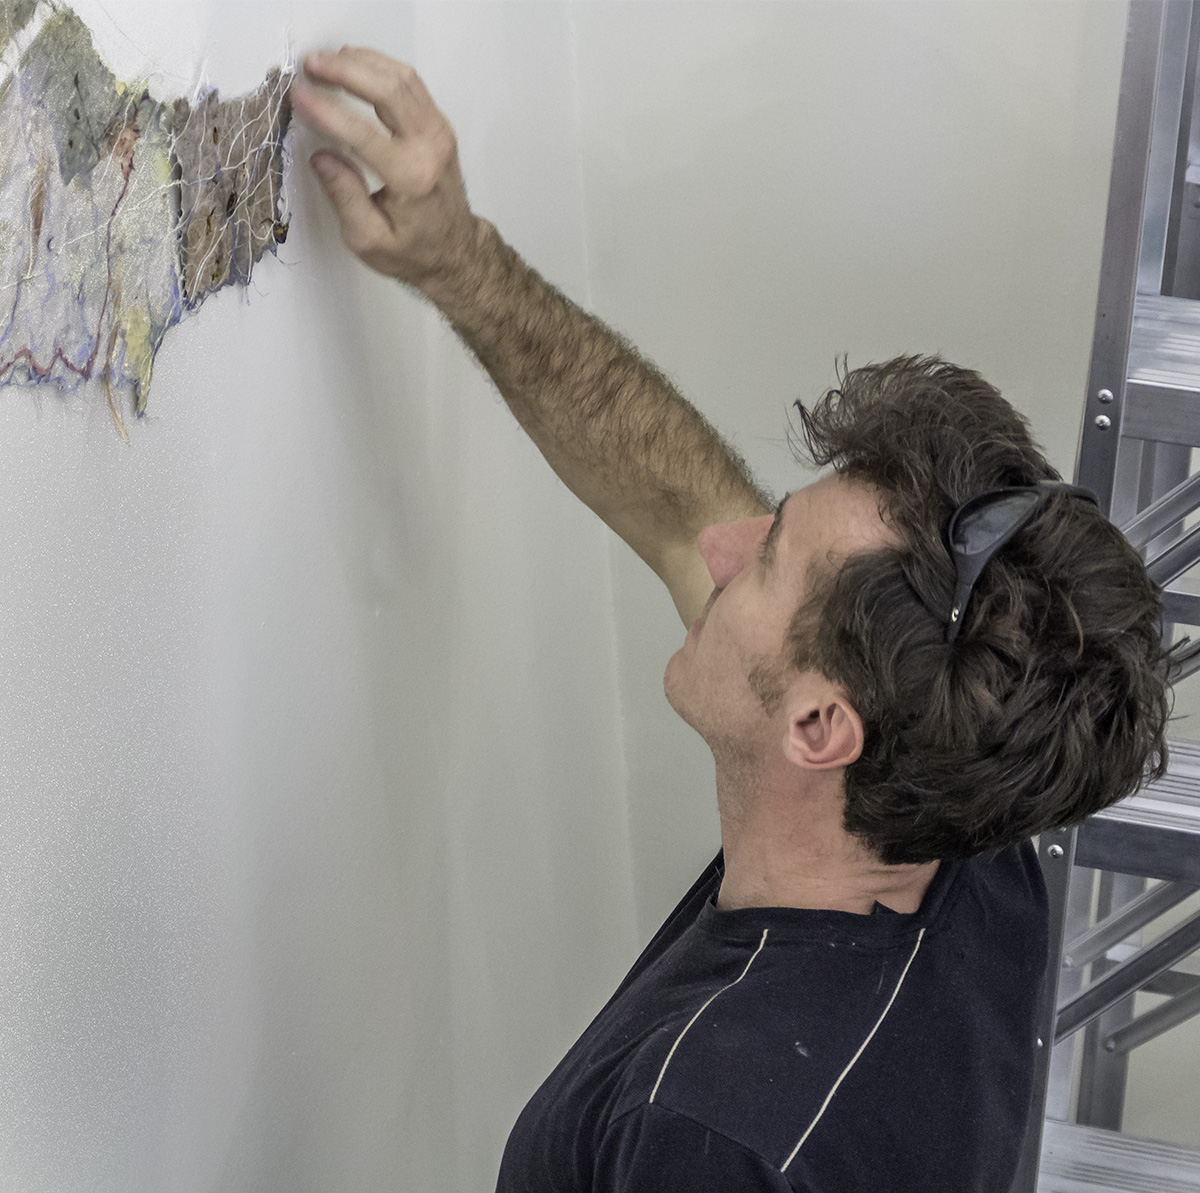 """In preparation for """"Transitions"""" an art exhibit from January 21 to May 15, 2015.  Monday - Friday. Opening Wednesday, January 21 from 4:30 - 6:30pm. at the Marin Community Foundation, 5 Hamilton Landing, Suite 200, Novato, CA"""